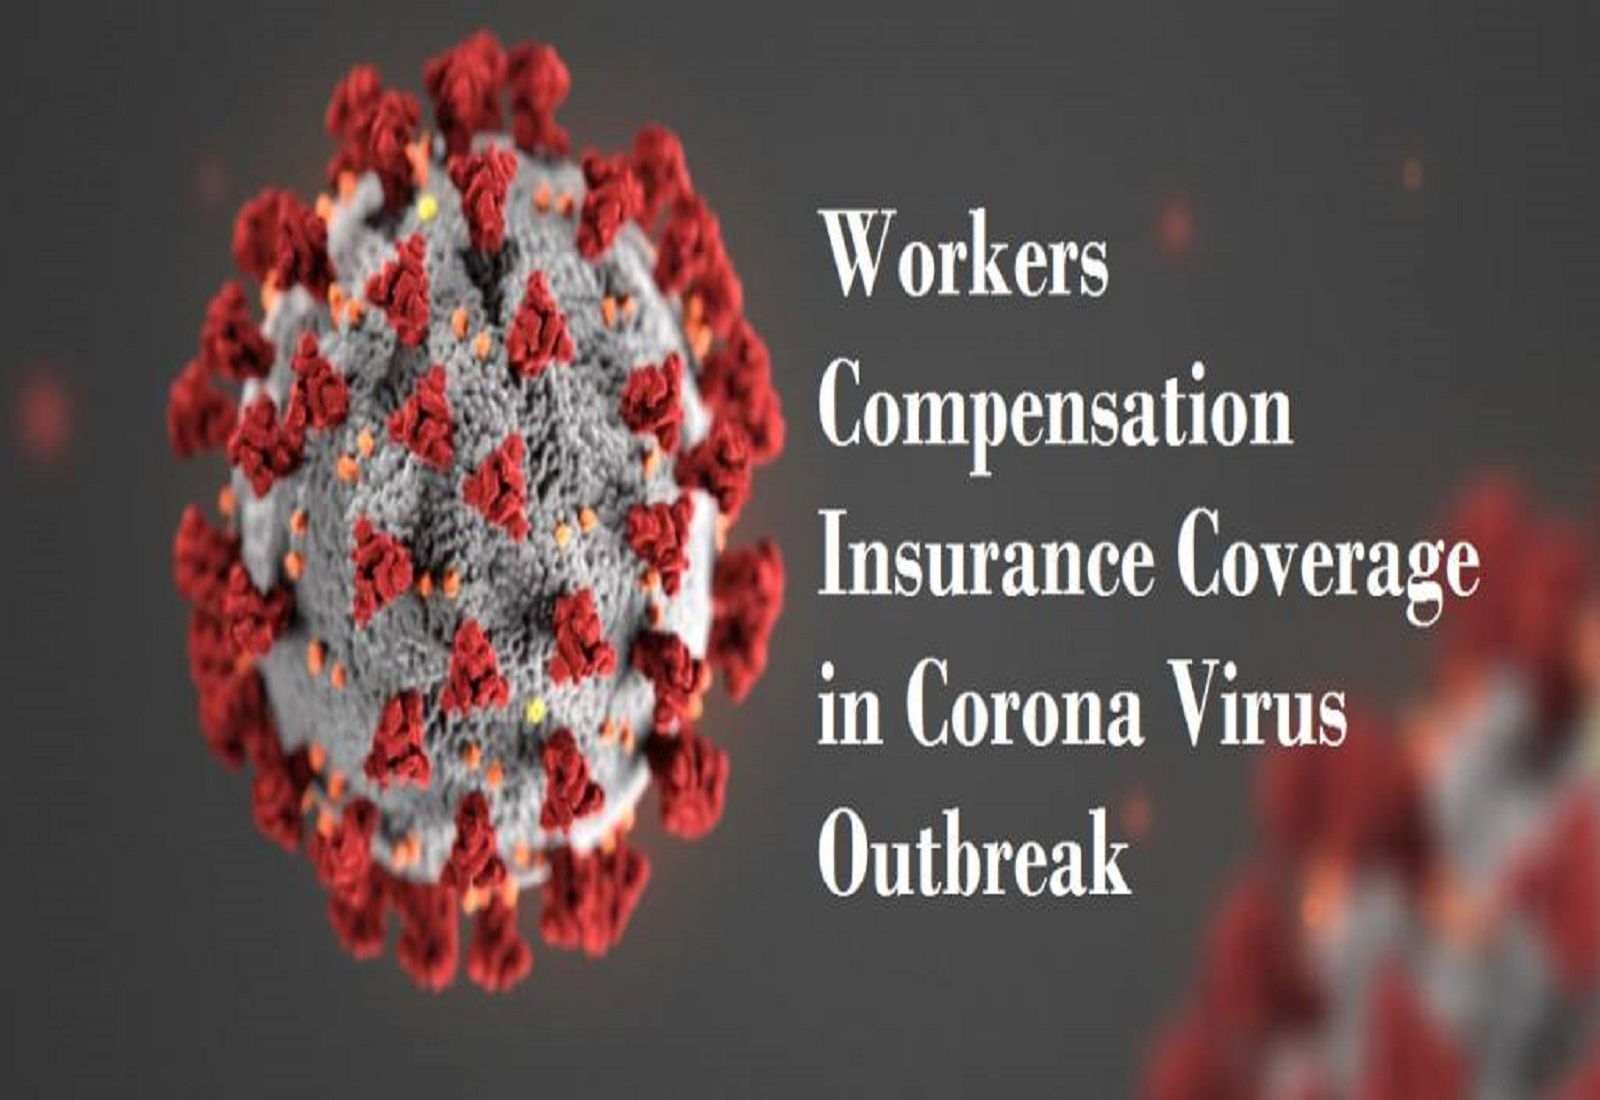 Workers Compensation Insurance Coverage in Corona Virus Outbreak